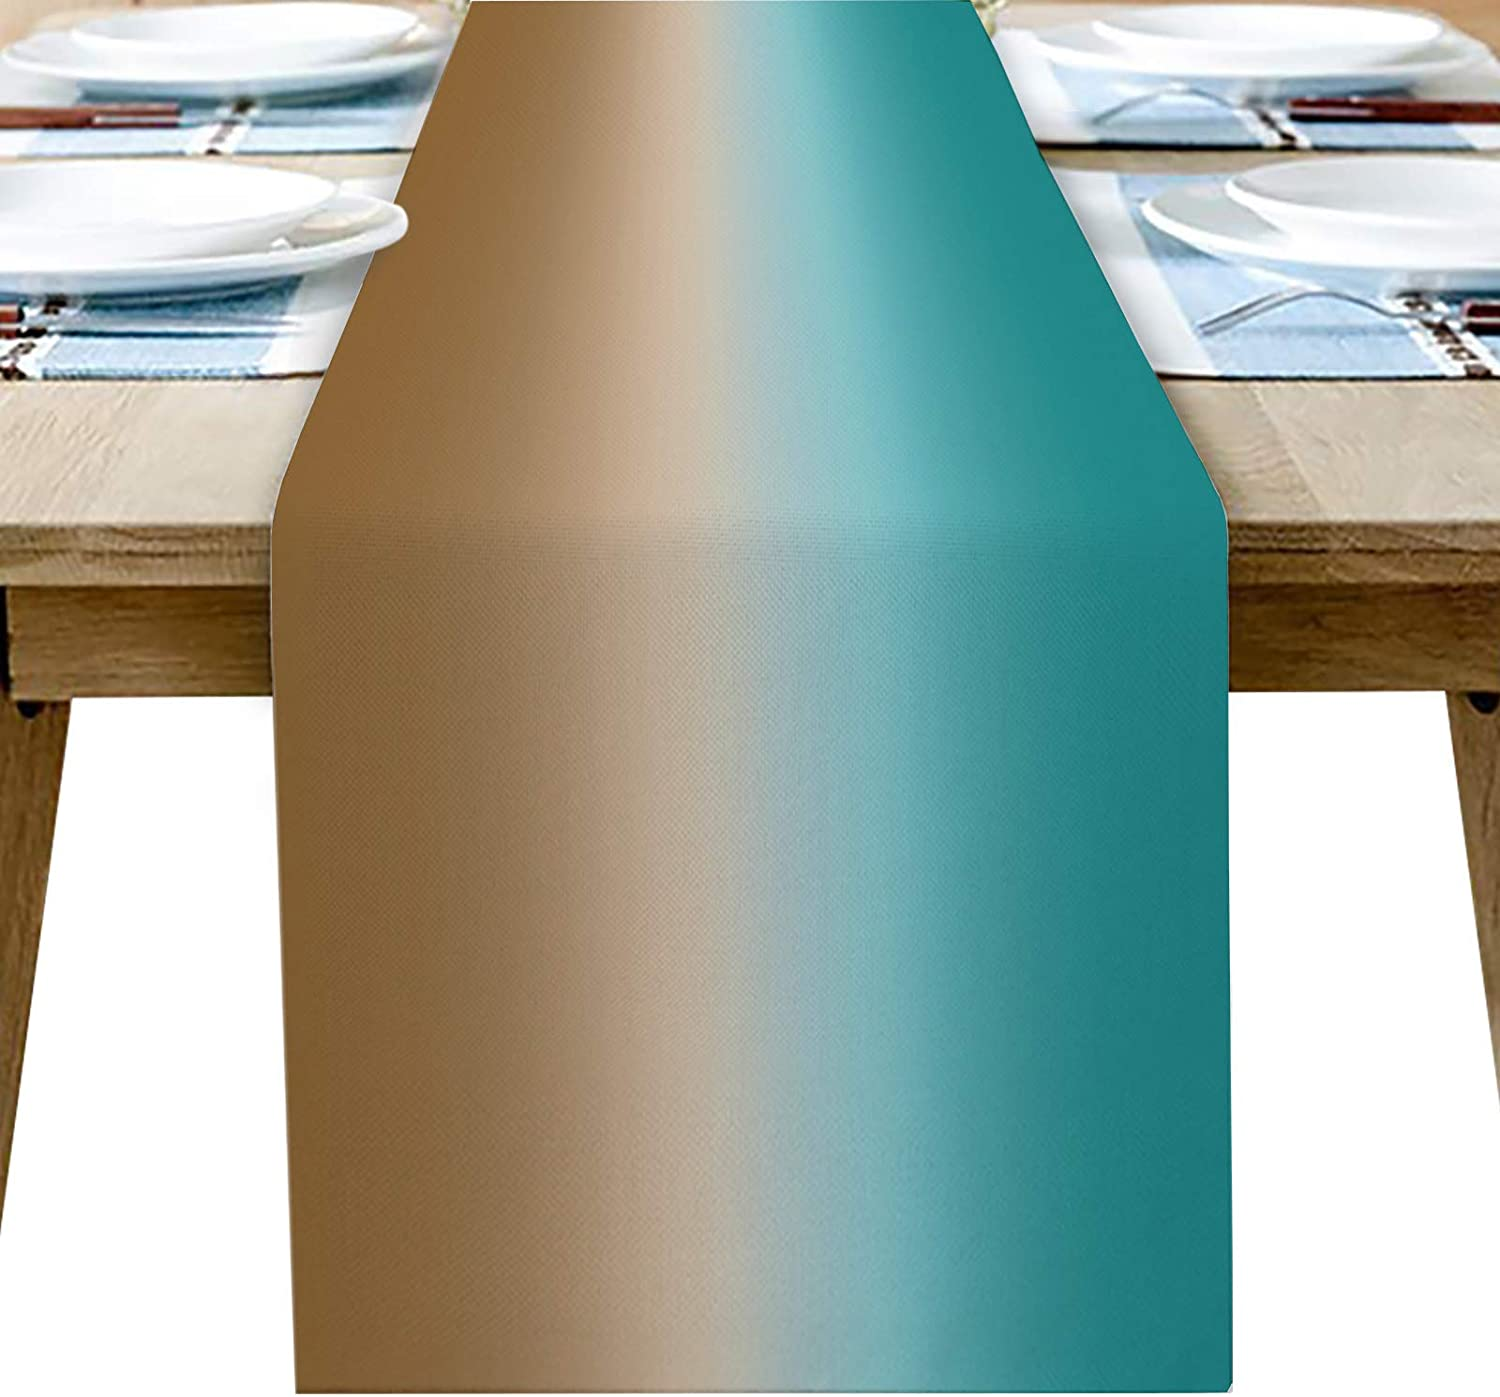 Table Runner 70 Inches Long for Dining Coffee Table, Farmhouse Teal Brown Graident Burlap Rectangle Table Cloth Decor Dress Scarf Birthday Wedding Holiday Party, 13